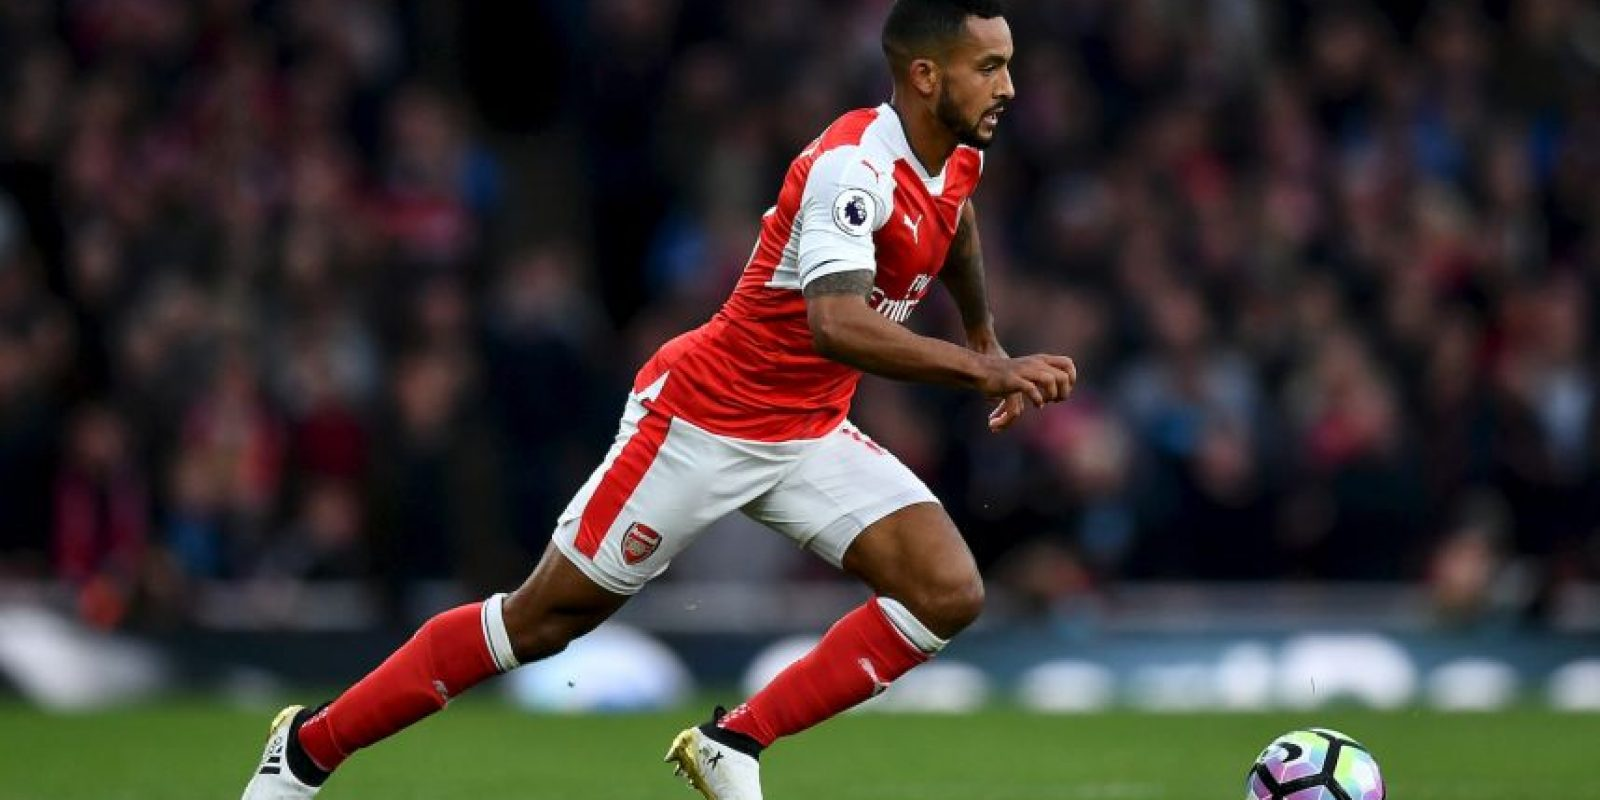 11.Theo Walcott (Arsenal) – 34.78 km/h Foto: Getty images